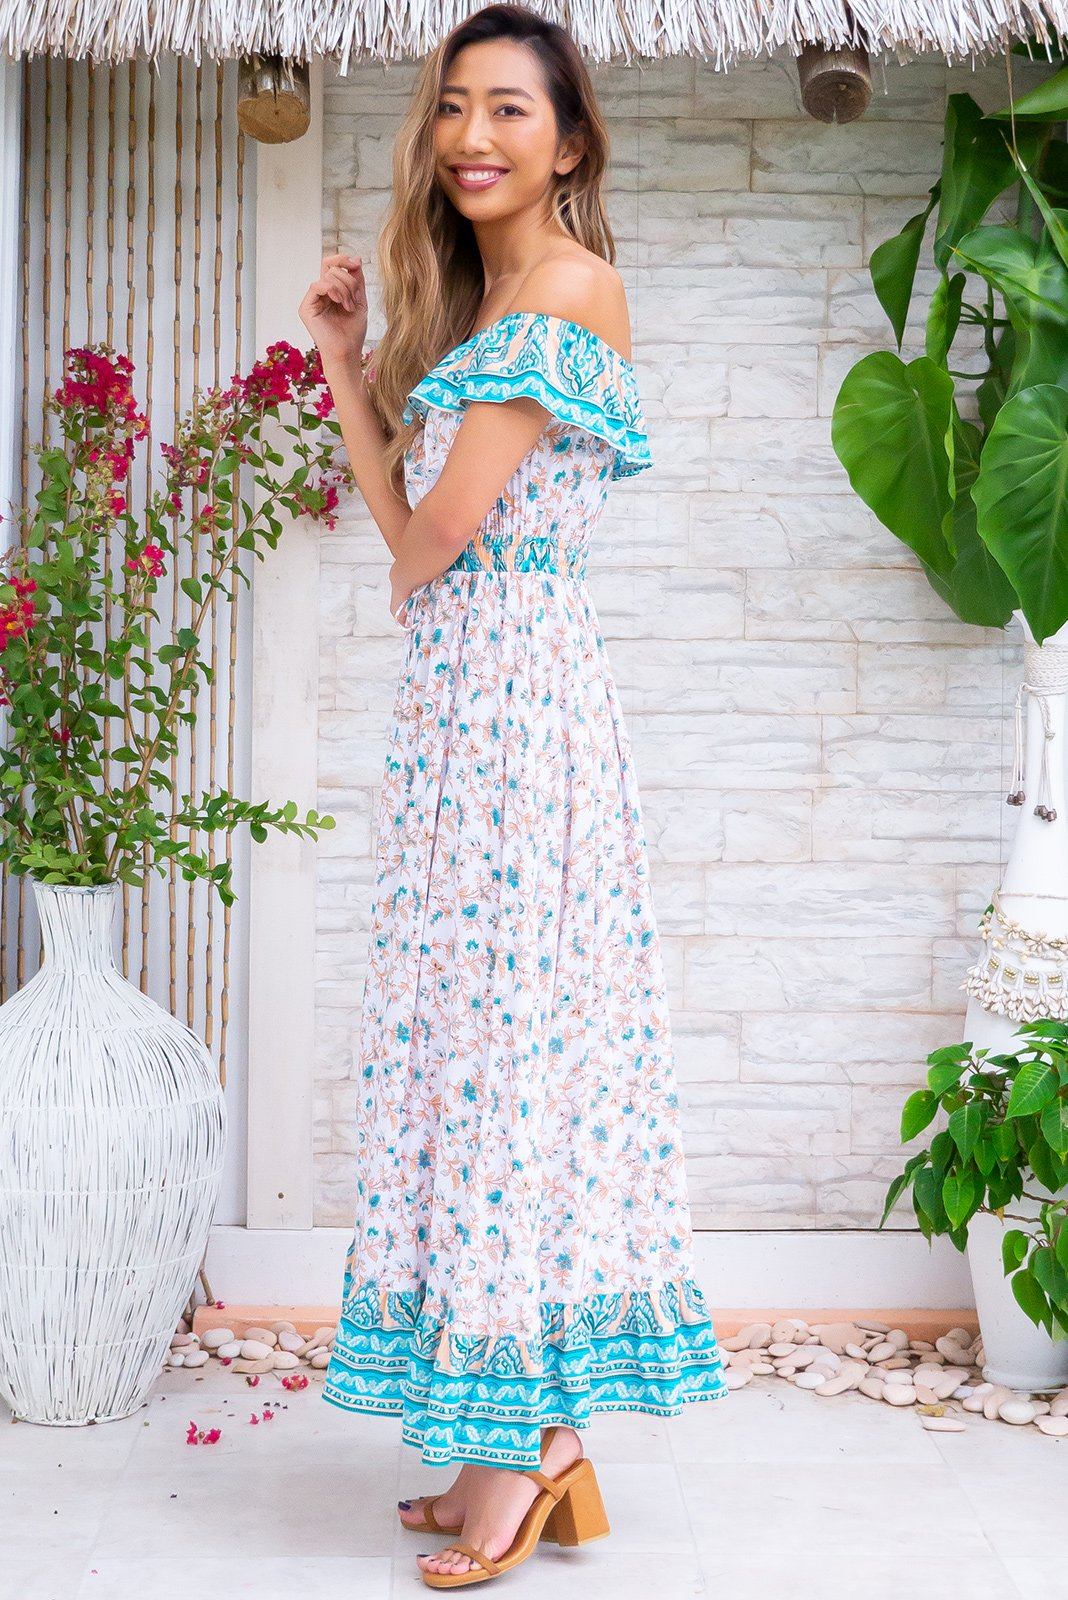 The Theoni Summer Maxi Dress, a perfect summer dress can be worn on or off shoulders, elasticated drawstring waist, elasticated frill neckline, frill hem with border print, white base with peach and turquoise print in woven 100% rayon.